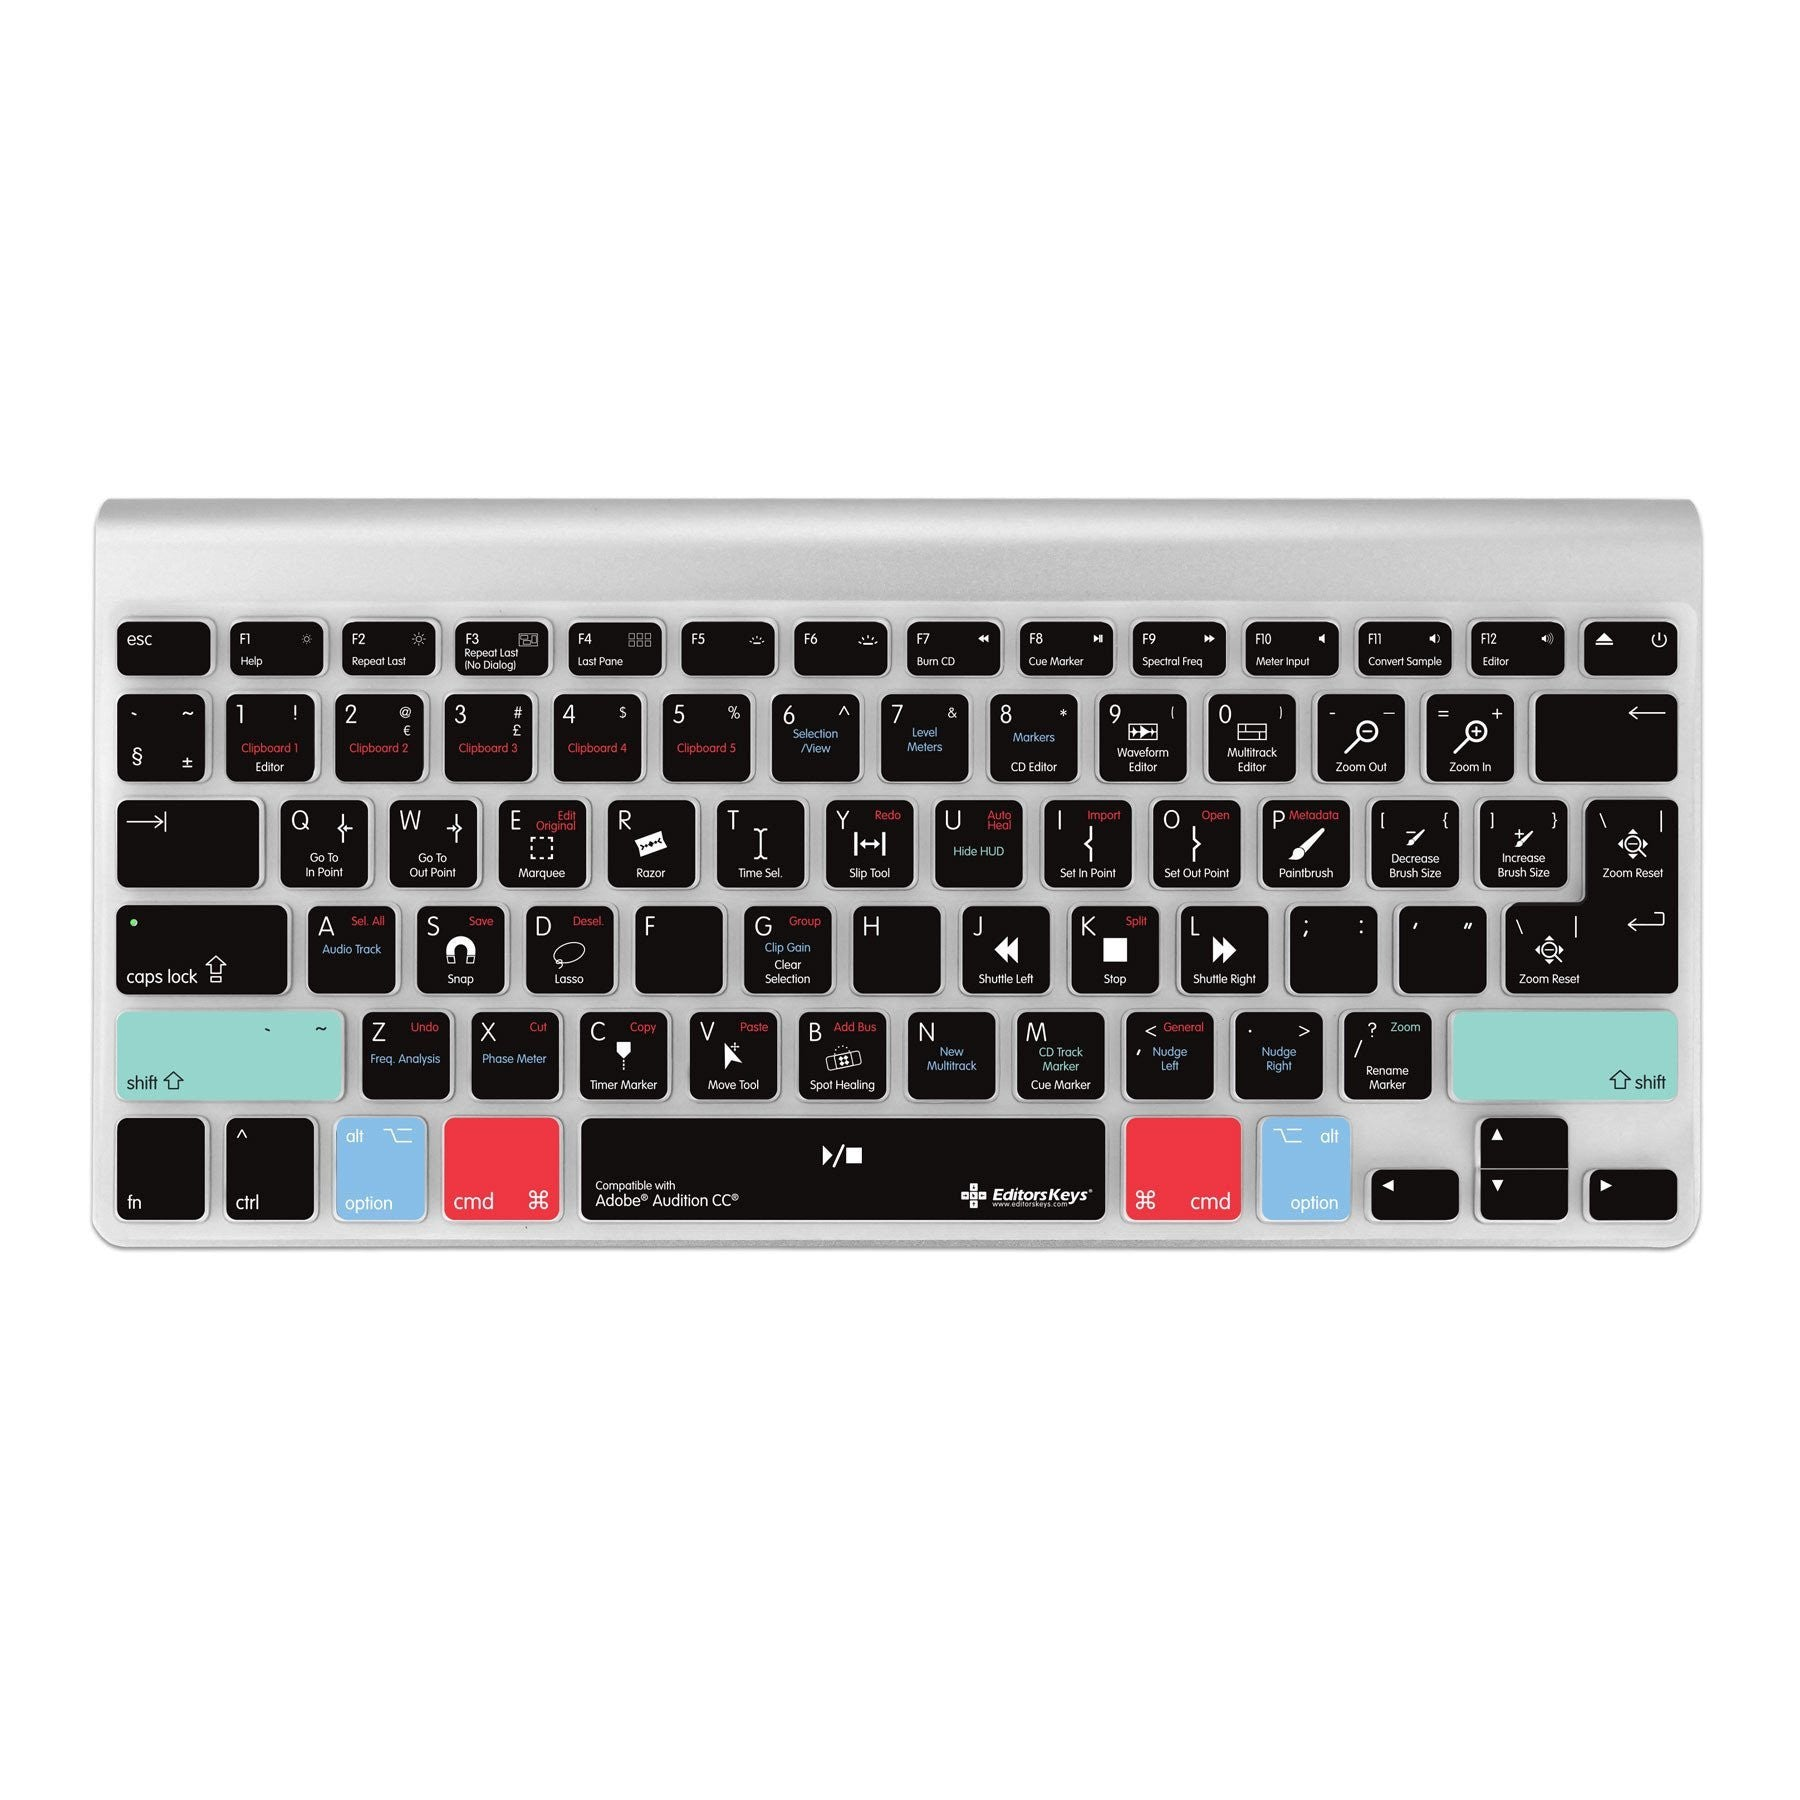 Adobe Audition Keyboard Covers for MacBook and iMac